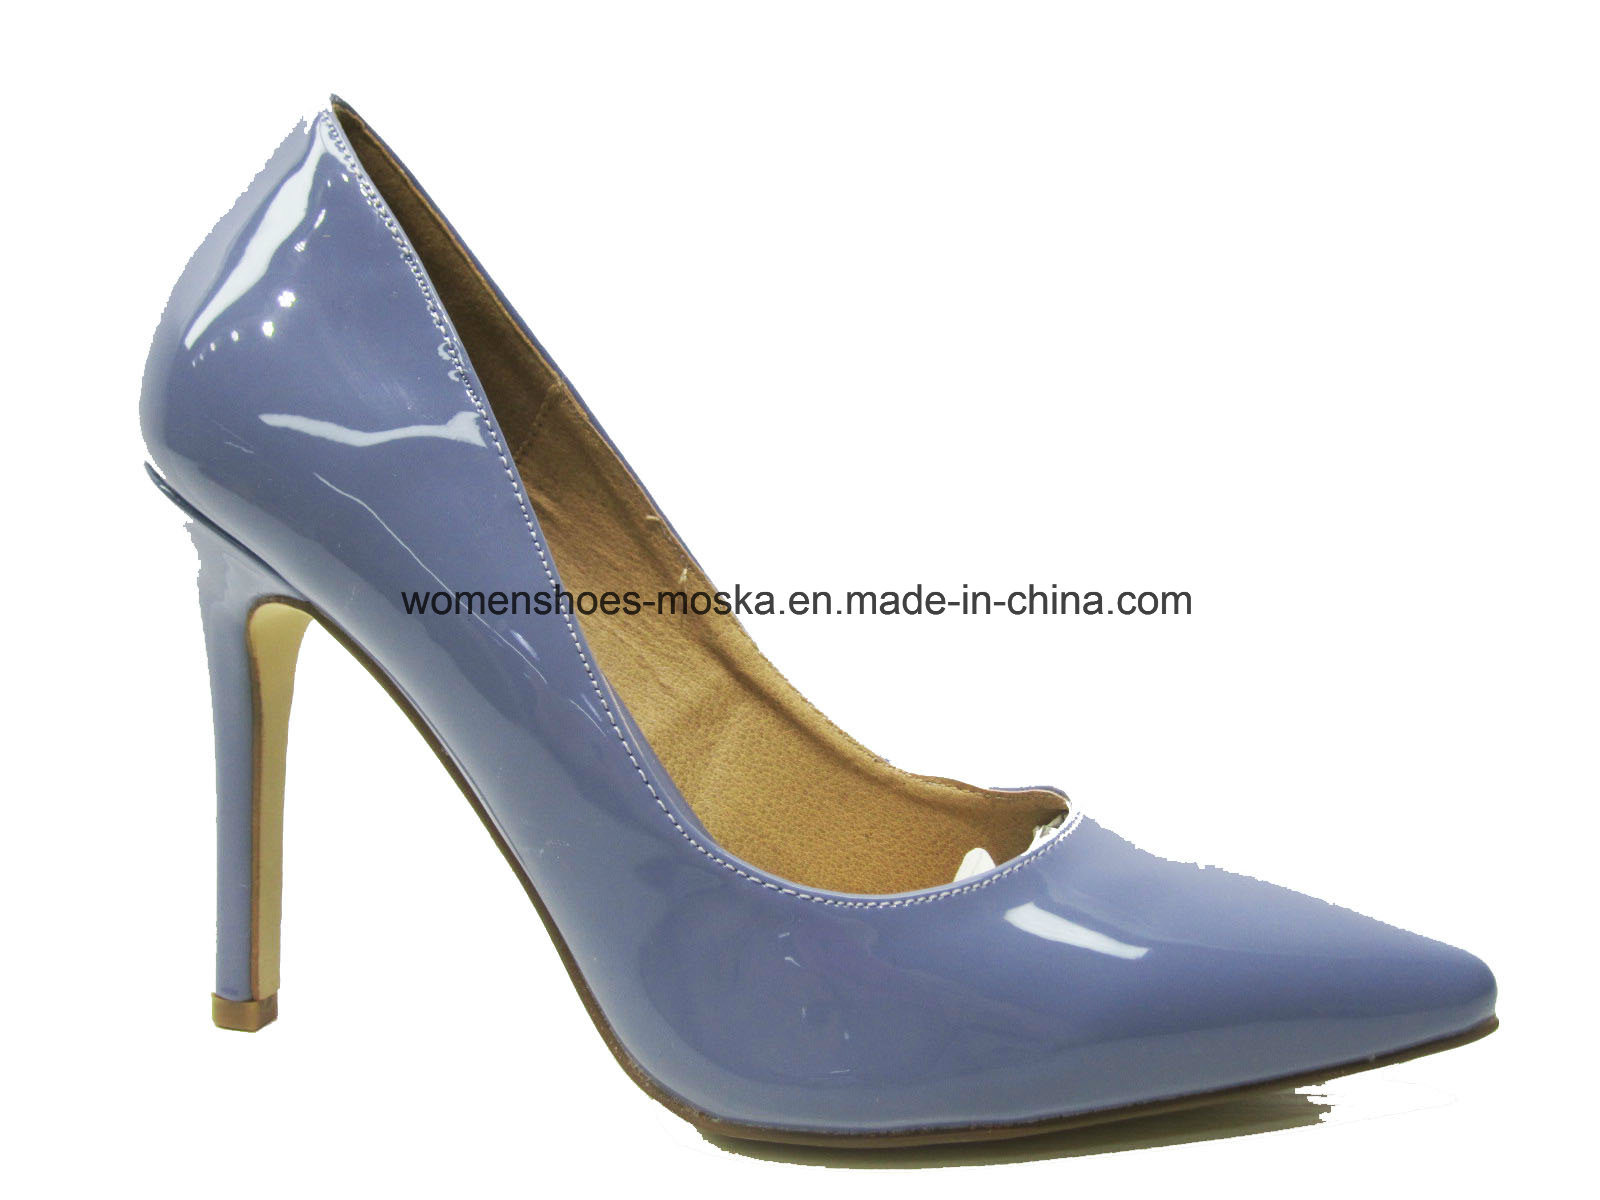 2017 New Design Sexy High Heel Women Dress Shoes Pointed Toe Lady Shoes